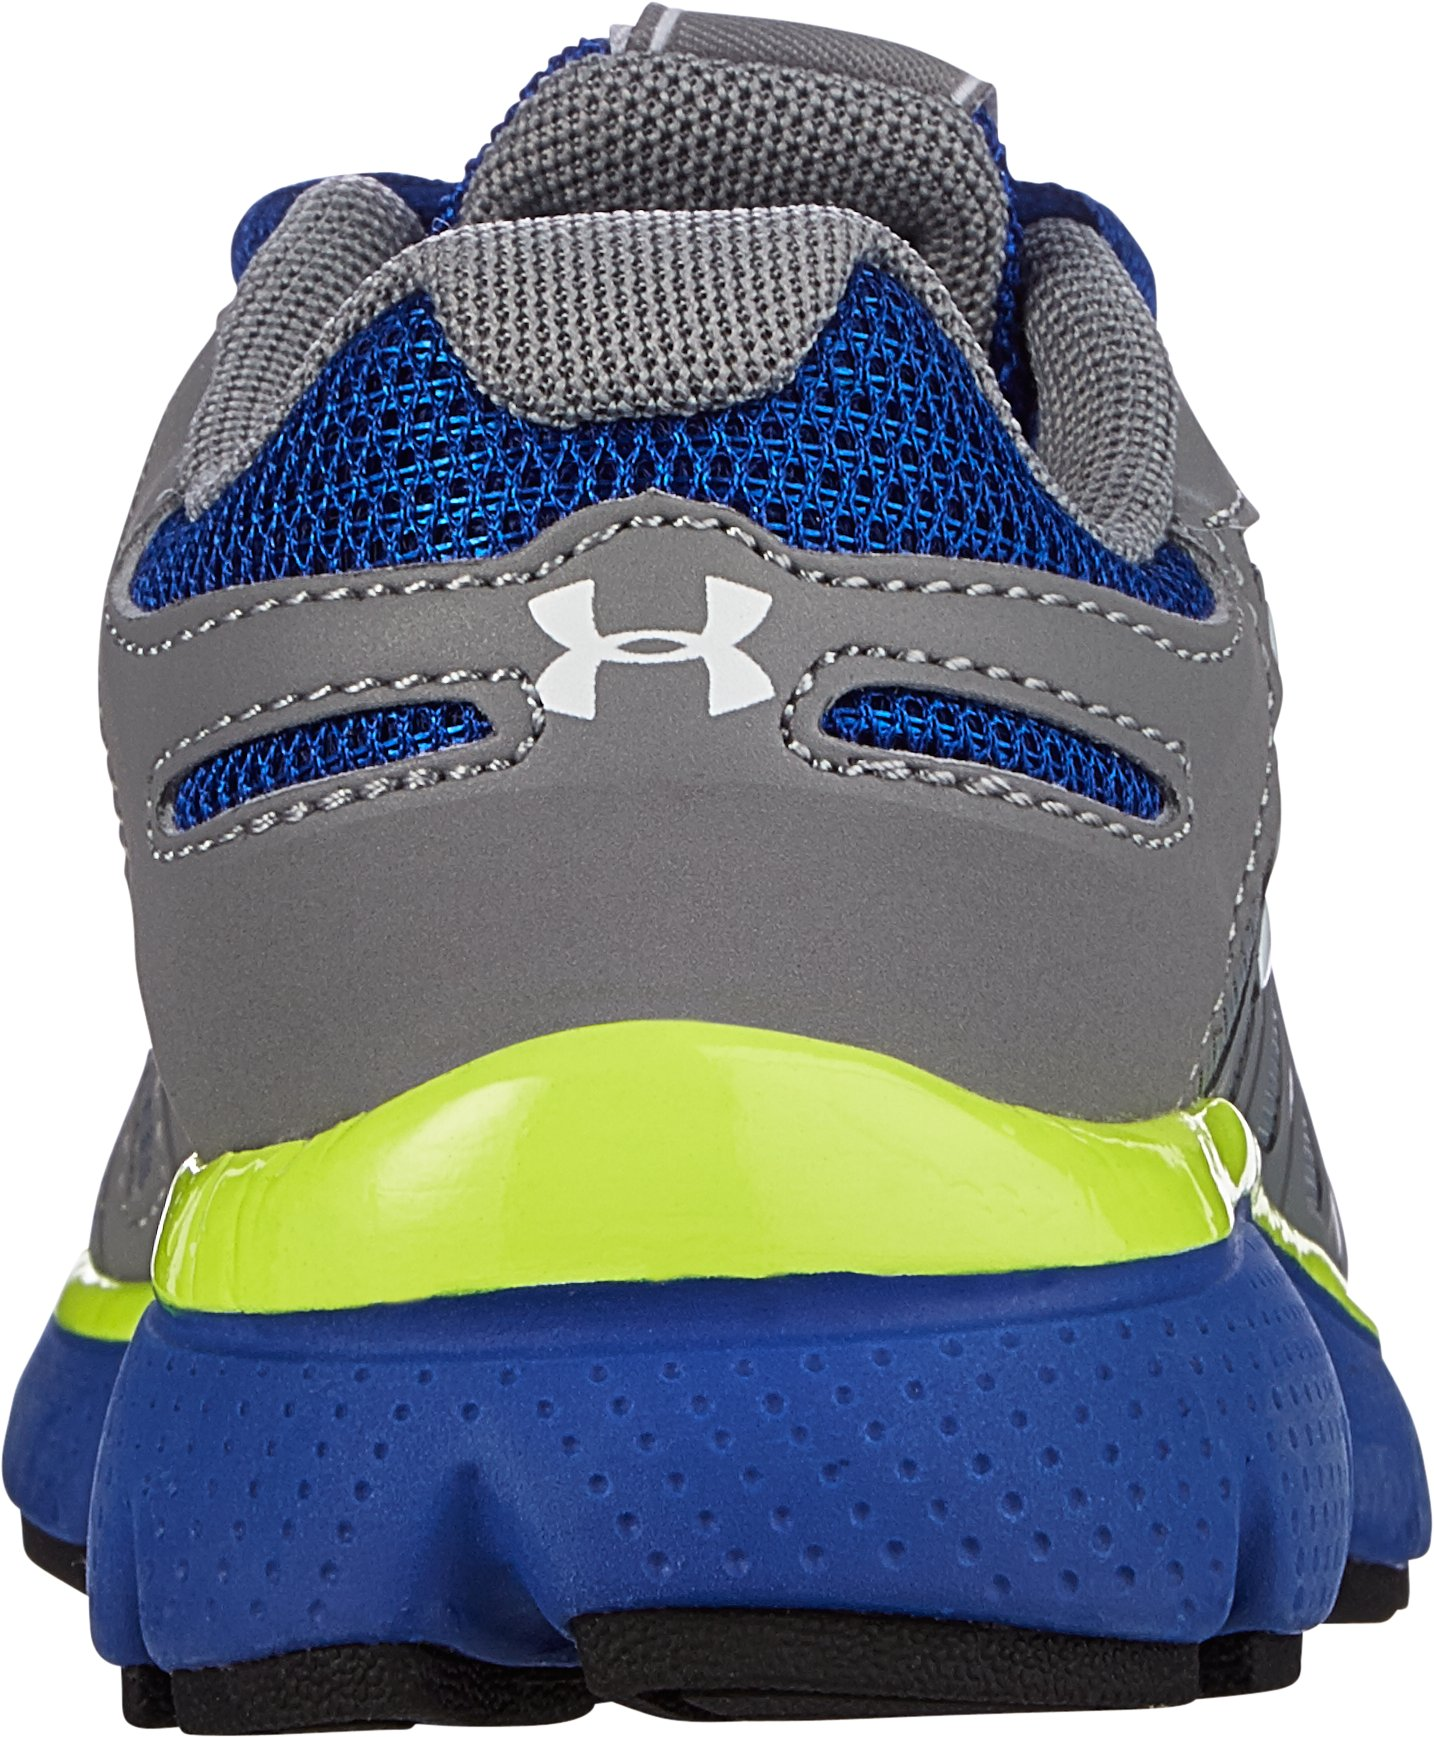 Boys' Pre-School UA Pulse II Shoes, Steel, undefined